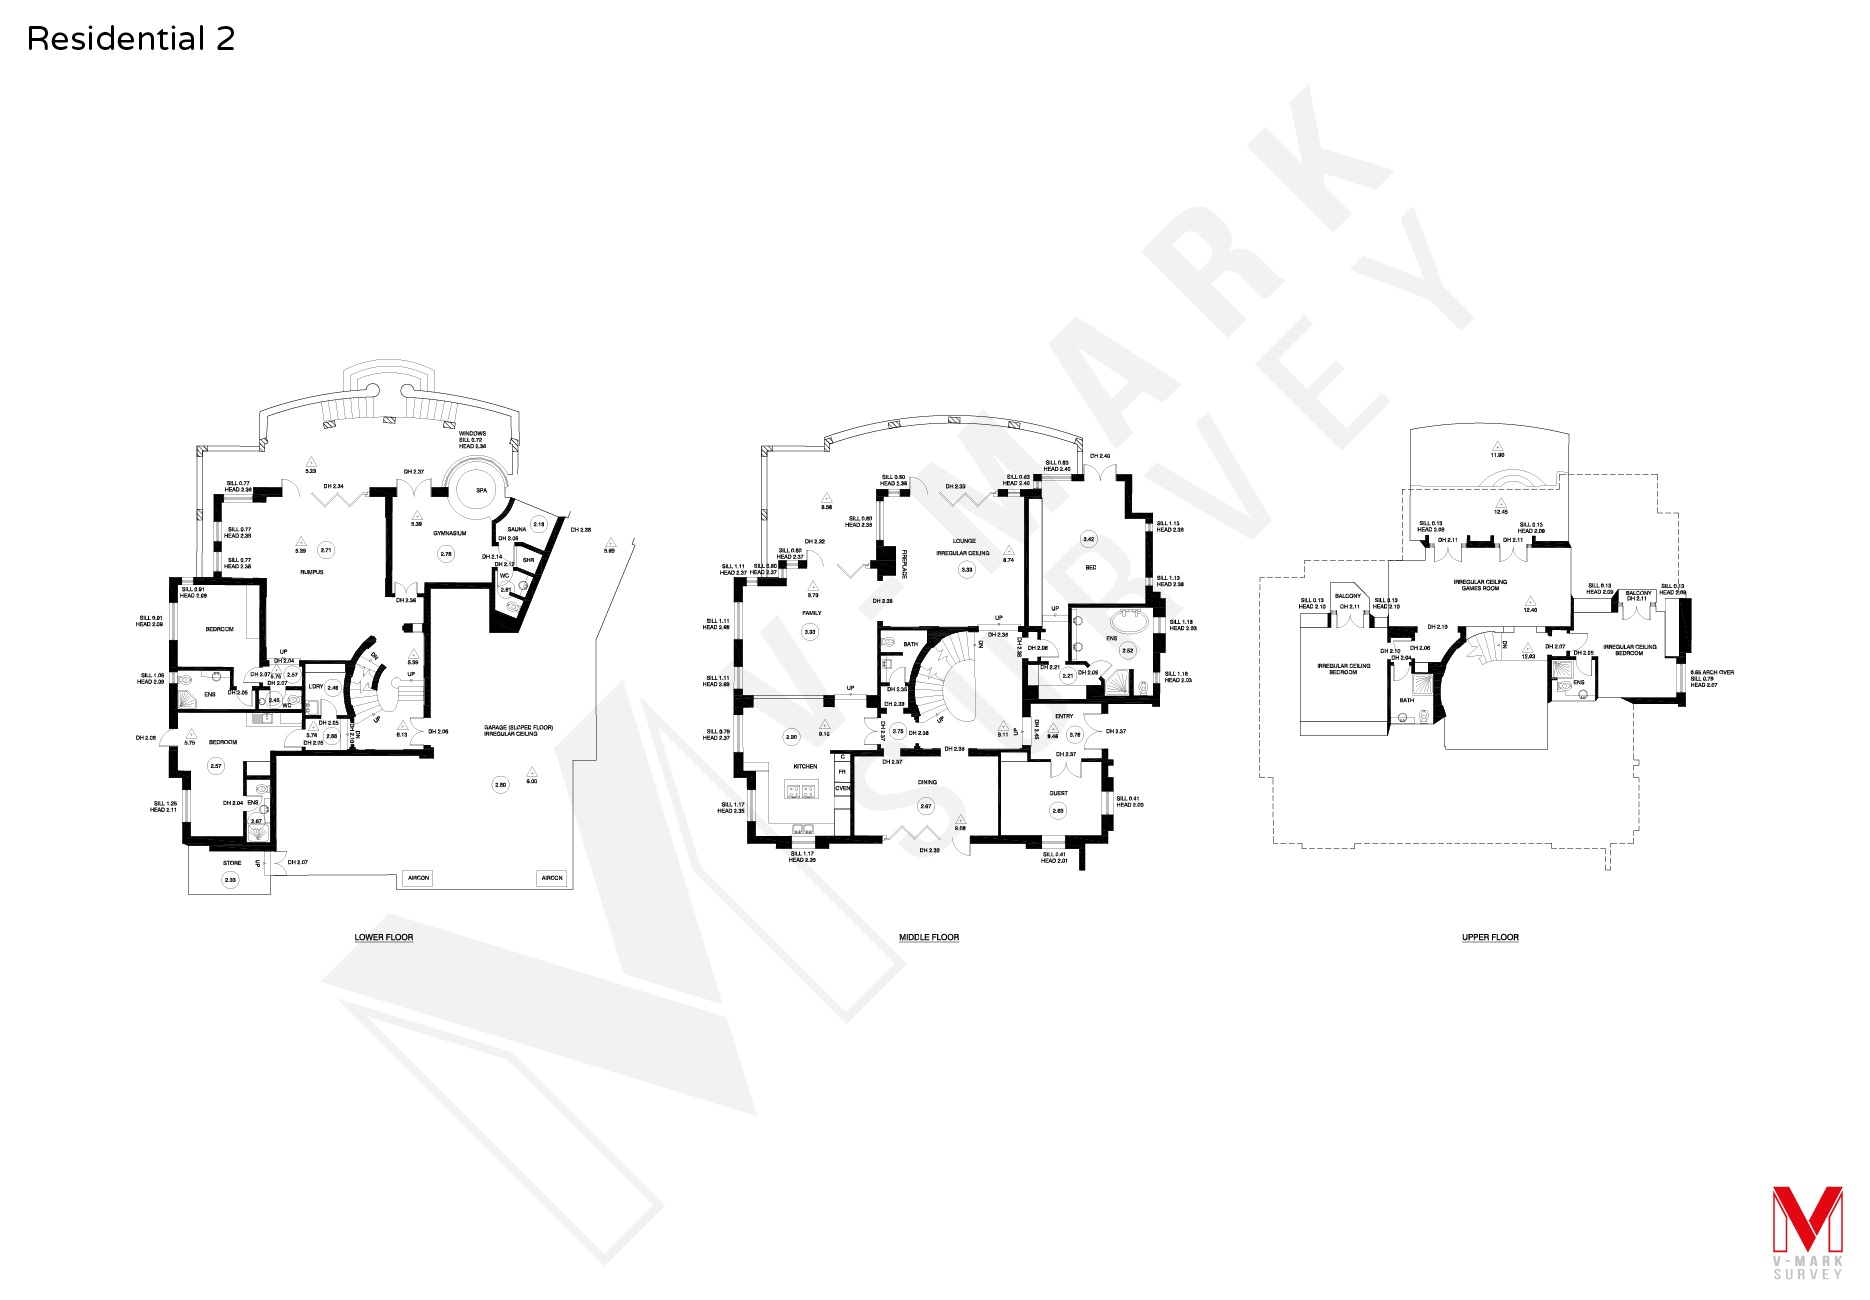 Residential Floorplans